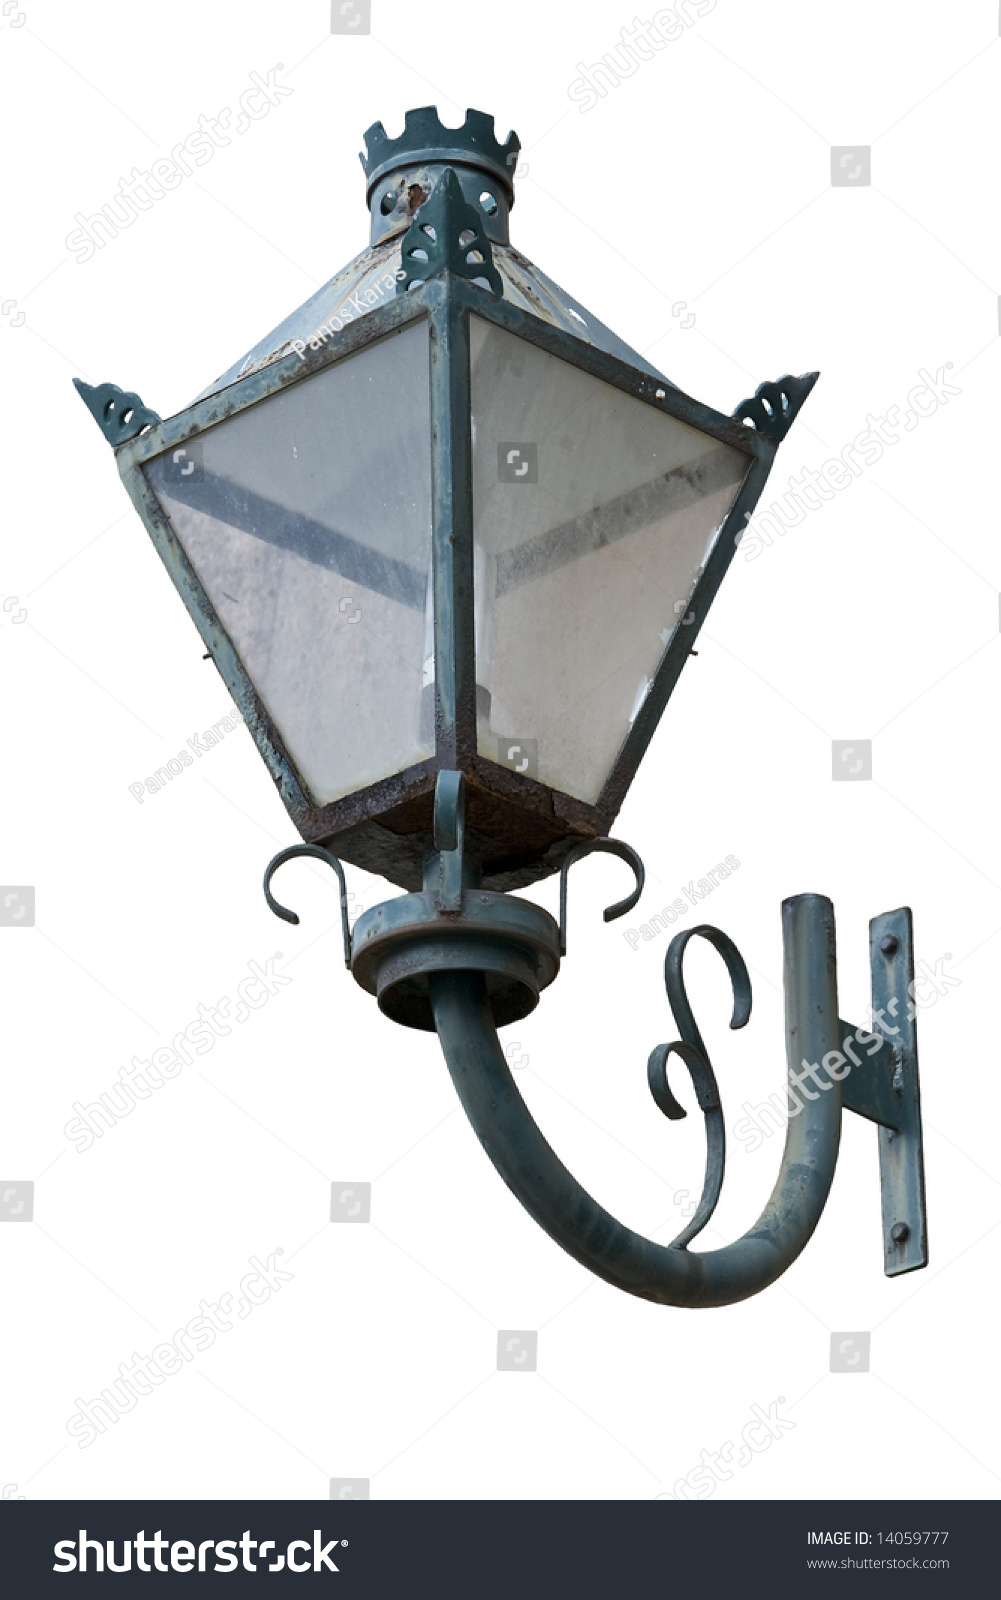 Wall Mounted Street Lamps : Old Traditional Wall Mount Street Lamp Stock Photo 14059777 : Shutterstock